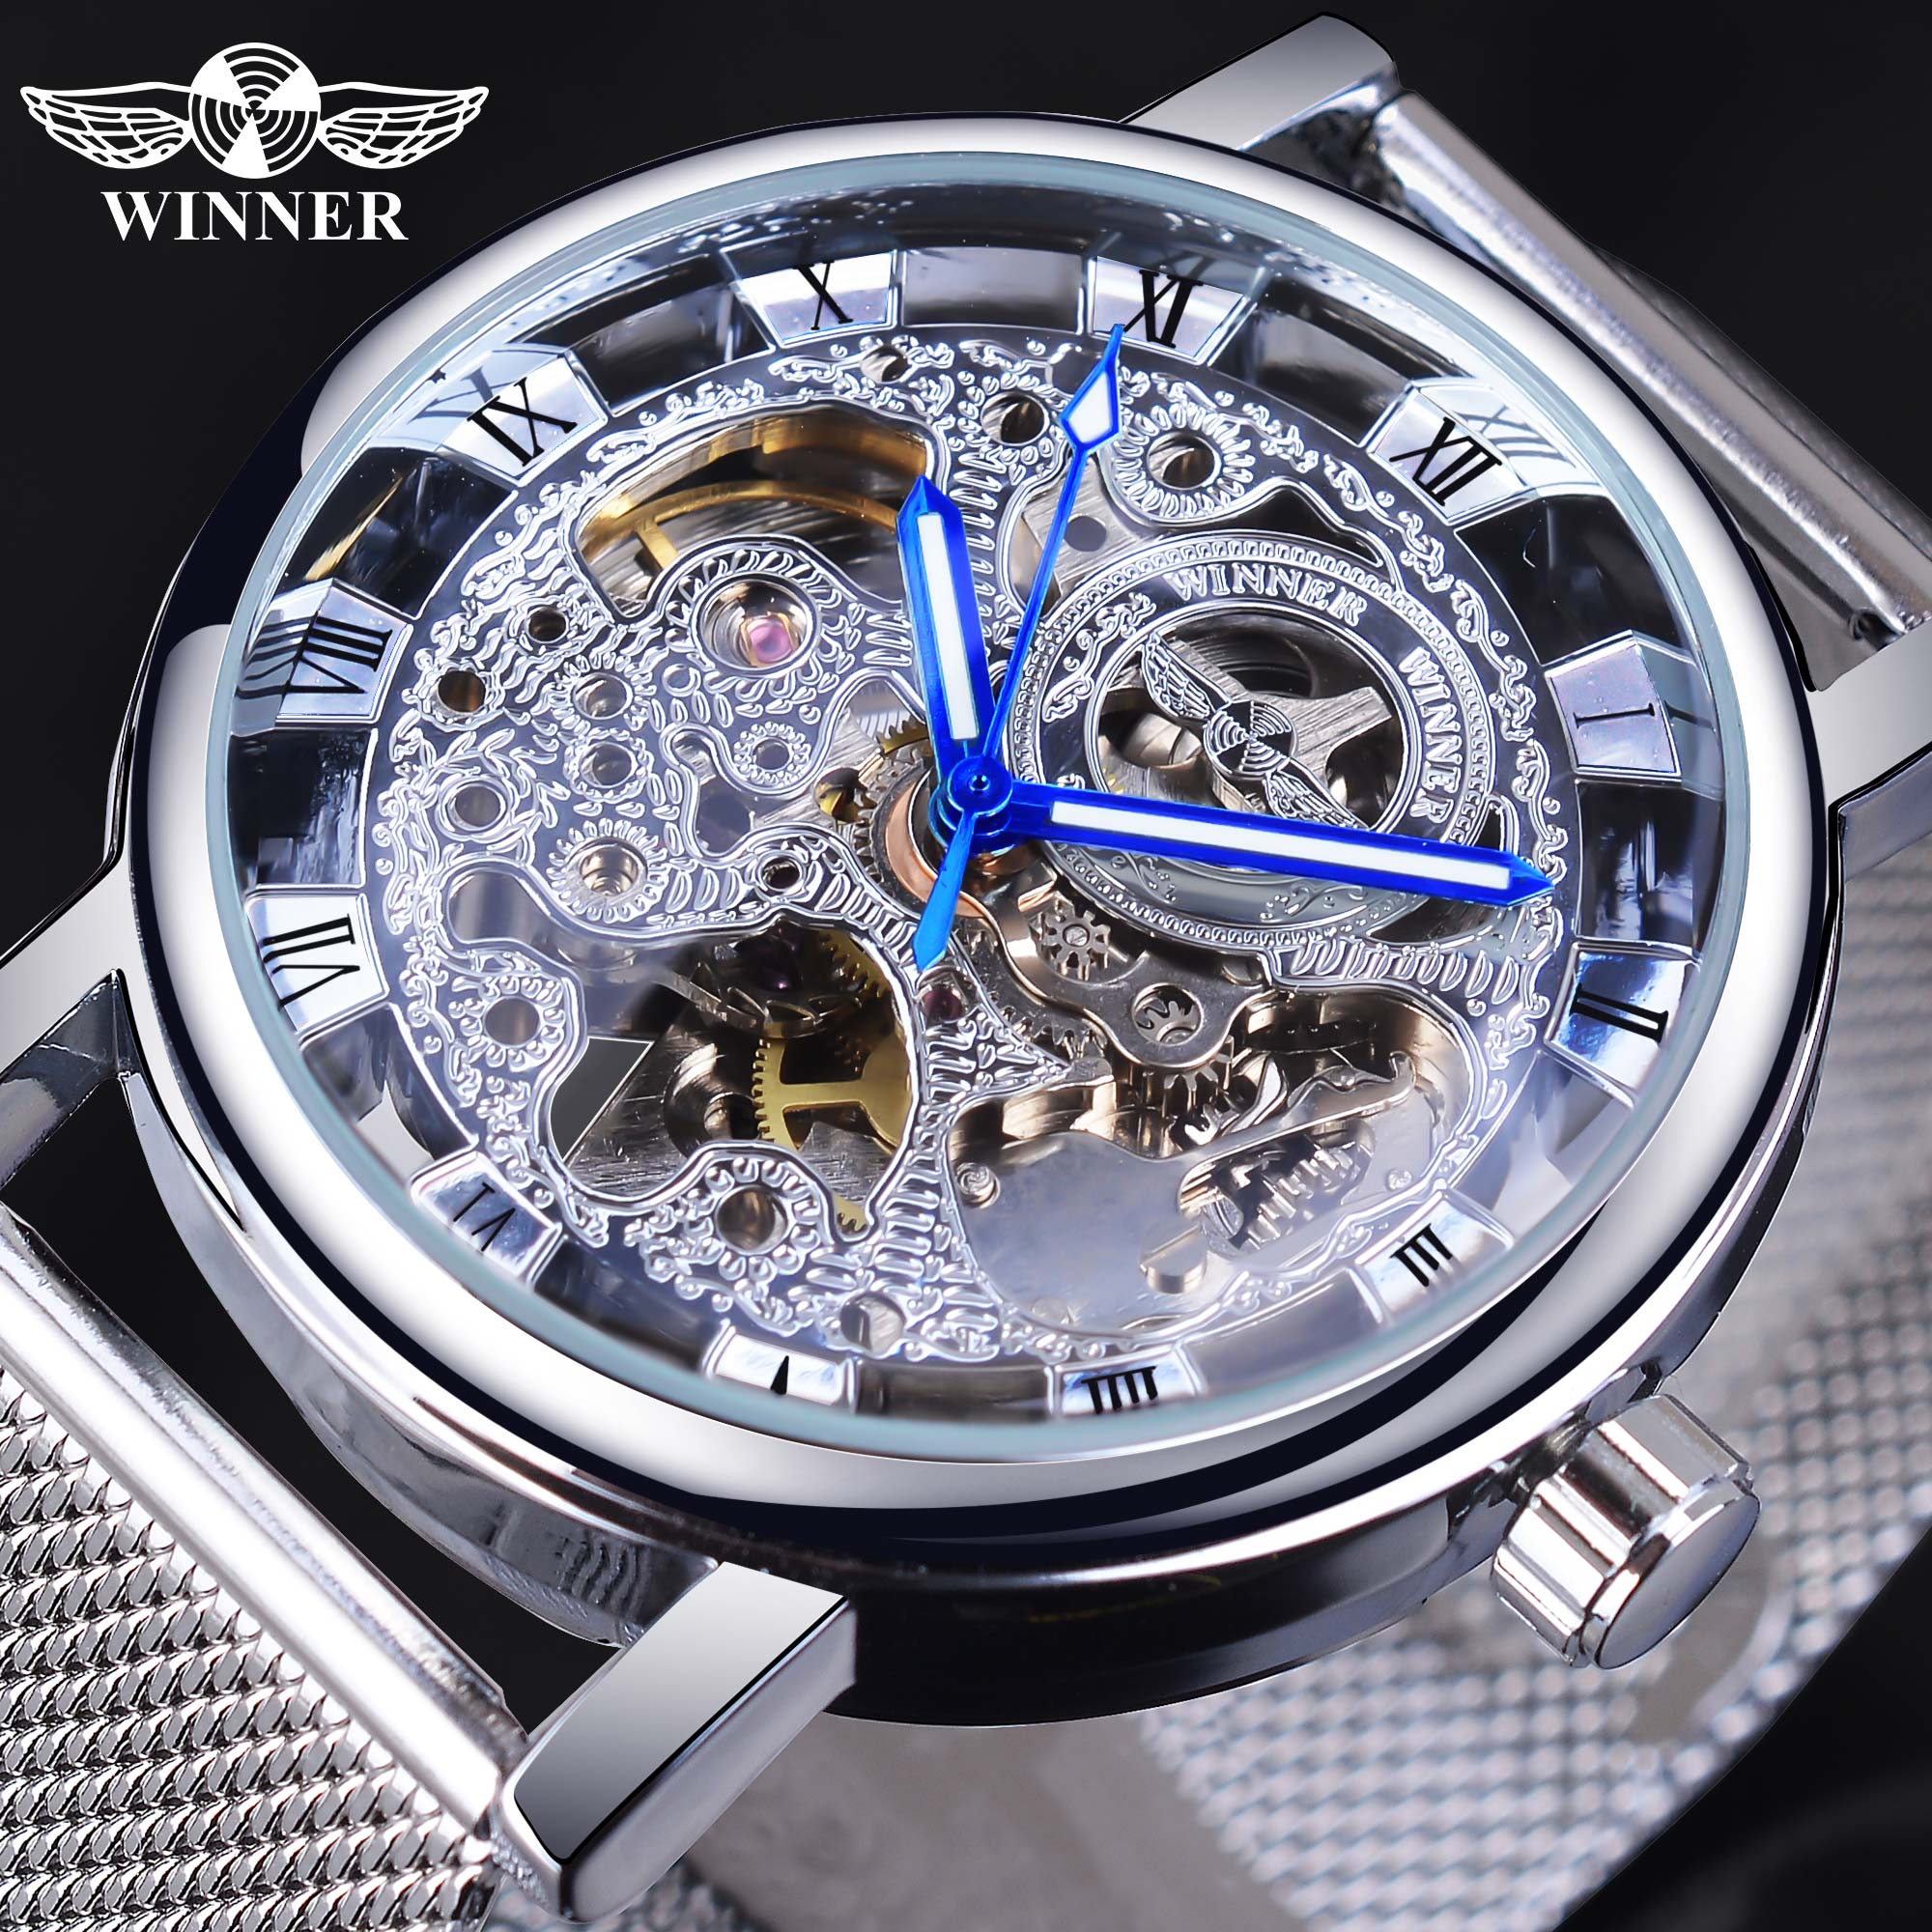 Winner Roman Analog Silver Skeleton Dial Watch Top Brand Luxury Automatic Mechanical Sport Watch Luminous Hand Mesh Band Clock